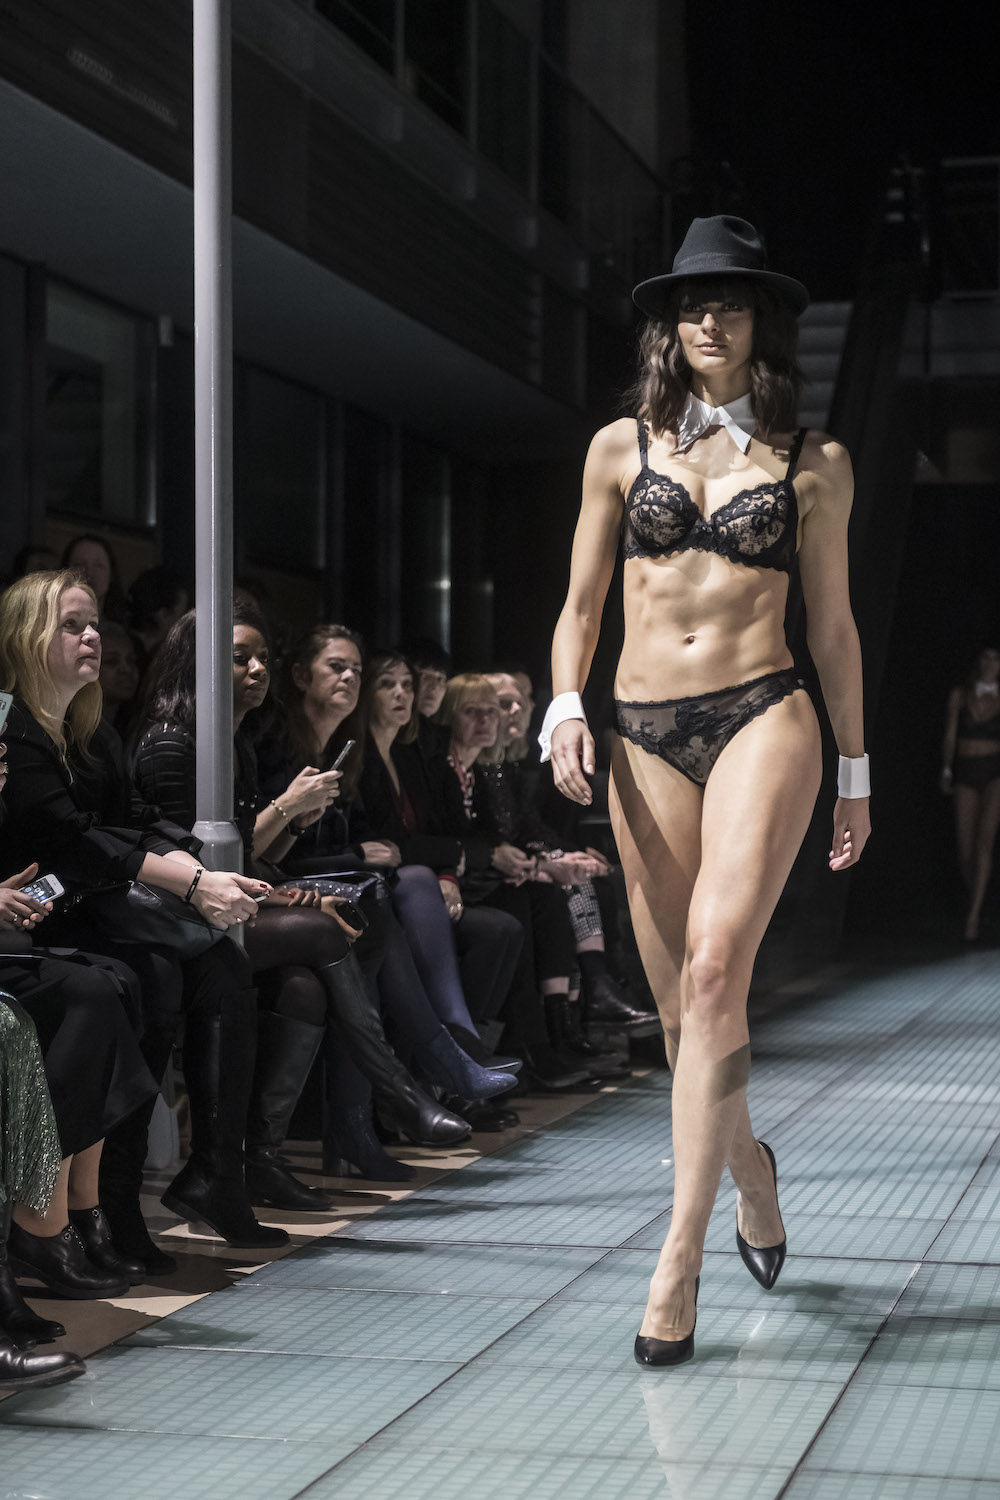 193fe1c5b4 ... Passionata, Lise Charmel, Lou, Louisa Bracq, Maison Lejaby, Simone  Pérèle) and five guest French designers presented their latest collections  on the ...